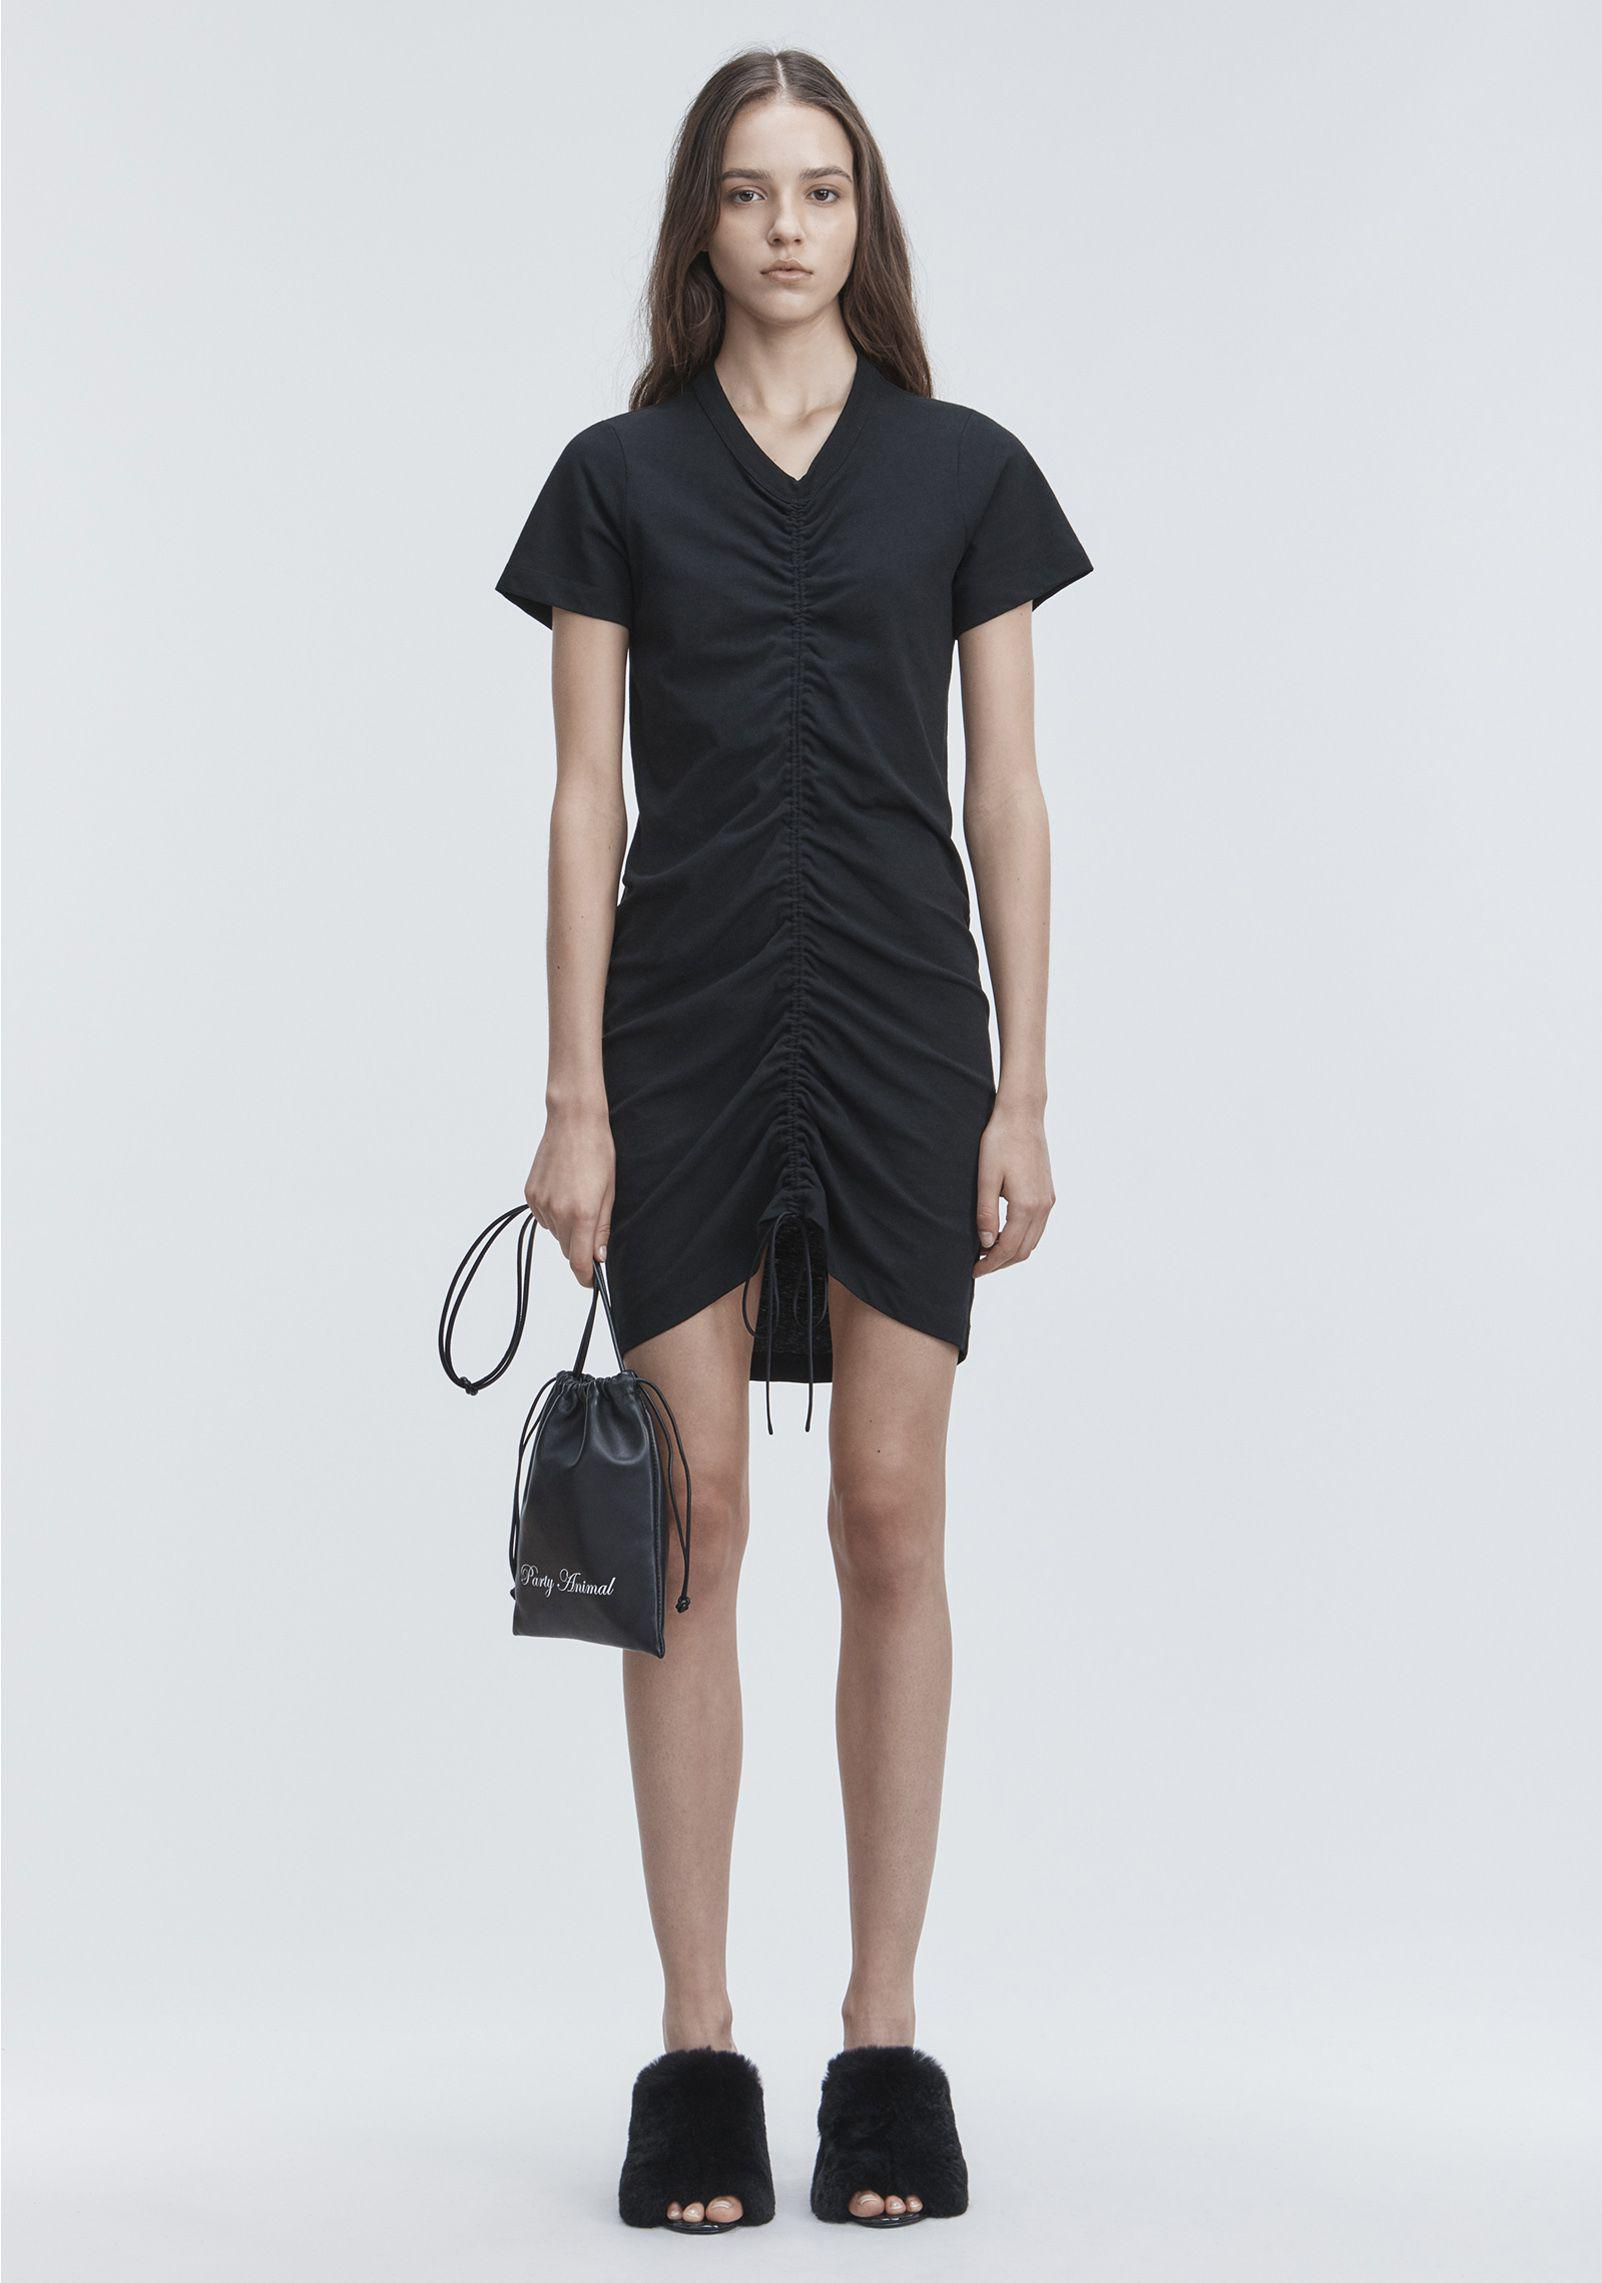 lyst t by alexander wang gathered front dress in black. Black Bedroom Furniture Sets. Home Design Ideas